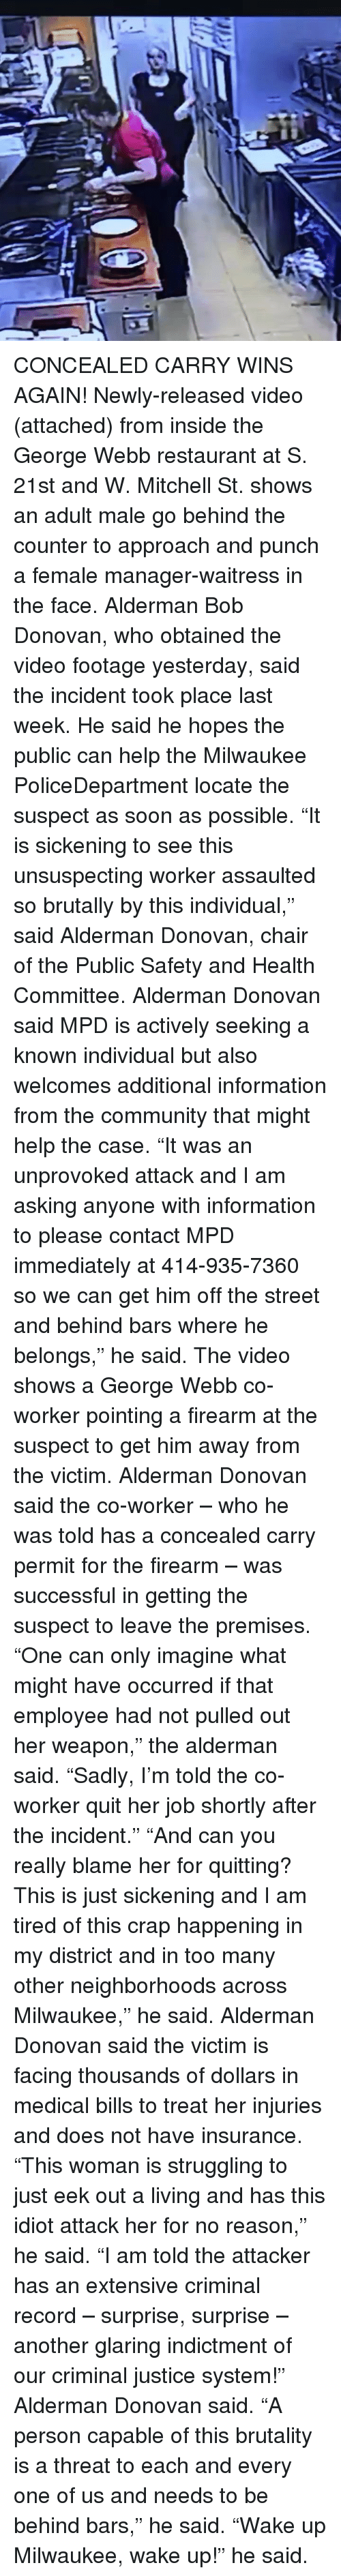 "Community, Memes, and Soon...: CONCEALED CARRY WINS AGAIN! Newly-released video (attached) from inside the George Webb restaurant at S. 21st and W. Mitchell St. shows an adult male go behind the counter to approach and punch a female manager-waitress in the face. Alderman Bob Donovan, who obtained the video footage yesterday, said the incident took place last week. He said he hopes the public can help the Milwaukee PoliceDepartment locate the suspect as soon as possible. ""It is sickening to see this unsuspecting worker assaulted so brutally by this individual,"" said Alderman Donovan, chair of the Public Safety and Health Committee. Alderman Donovan said MPD is actively seeking a known individual but also welcomes additional information from the community that might help the case. ""It was an unprovoked attack and I am asking anyone with information to please contact MPD immediately at 414-935-7360 so we can get him off the street and behind bars where he belongs,"" he said. The video shows a George Webb co-worker pointing a firearm at the suspect to get him away from the victim. Alderman Donovan said the co-worker – who he was told has a concealed carry permit for the firearm – was successful in getting the suspect to leave the premises. ""One can only imagine what might have occurred if that employee had not pulled out her weapon,"" the alderman said. ""Sadly, I'm told the co-worker quit her job shortly after the incident."" ""And can you really blame her for quitting? This is just sickening and I am tired of this crap happening in my district and in too many other neighborhoods across Milwaukee,"" he said. Alderman Donovan said the victim is facing thousands of dollars in medical bills to treat her injuries and does not have insurance. ""This woman is struggling to just eek out a living and has this idiot attack her for no reason,"" he said. ""I am told the attacker has an extensive criminal record – surprise, surprise – another glaring indictment of our criminal justice system!"" Alderman Donovan said. ""A person capable of this brutality is a threat to each and every one of us and needs to be behind bars,"" he said. ""Wake up Milwaukee, wake up!"" he said."